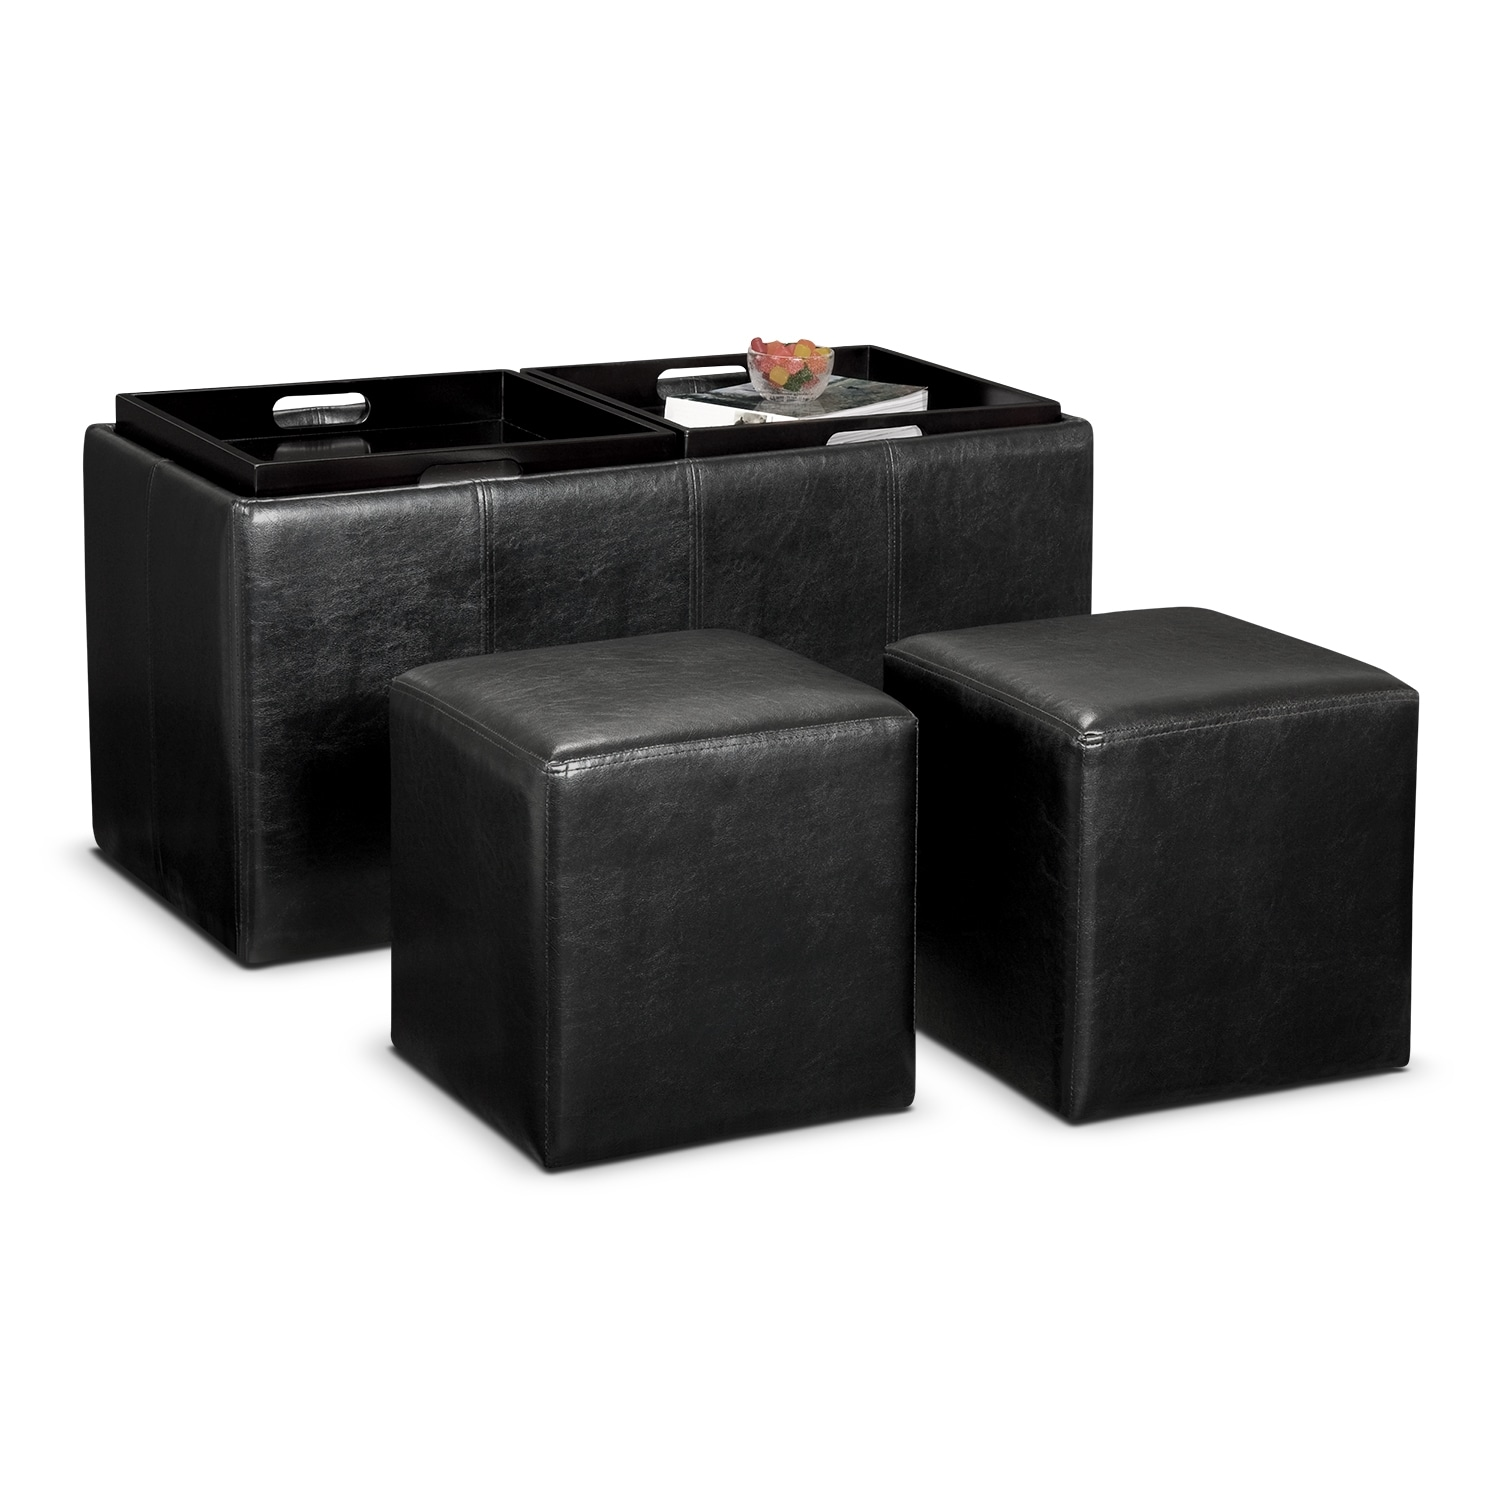 Tiffany 3-Piece Storage Ottoman with Trays - Black